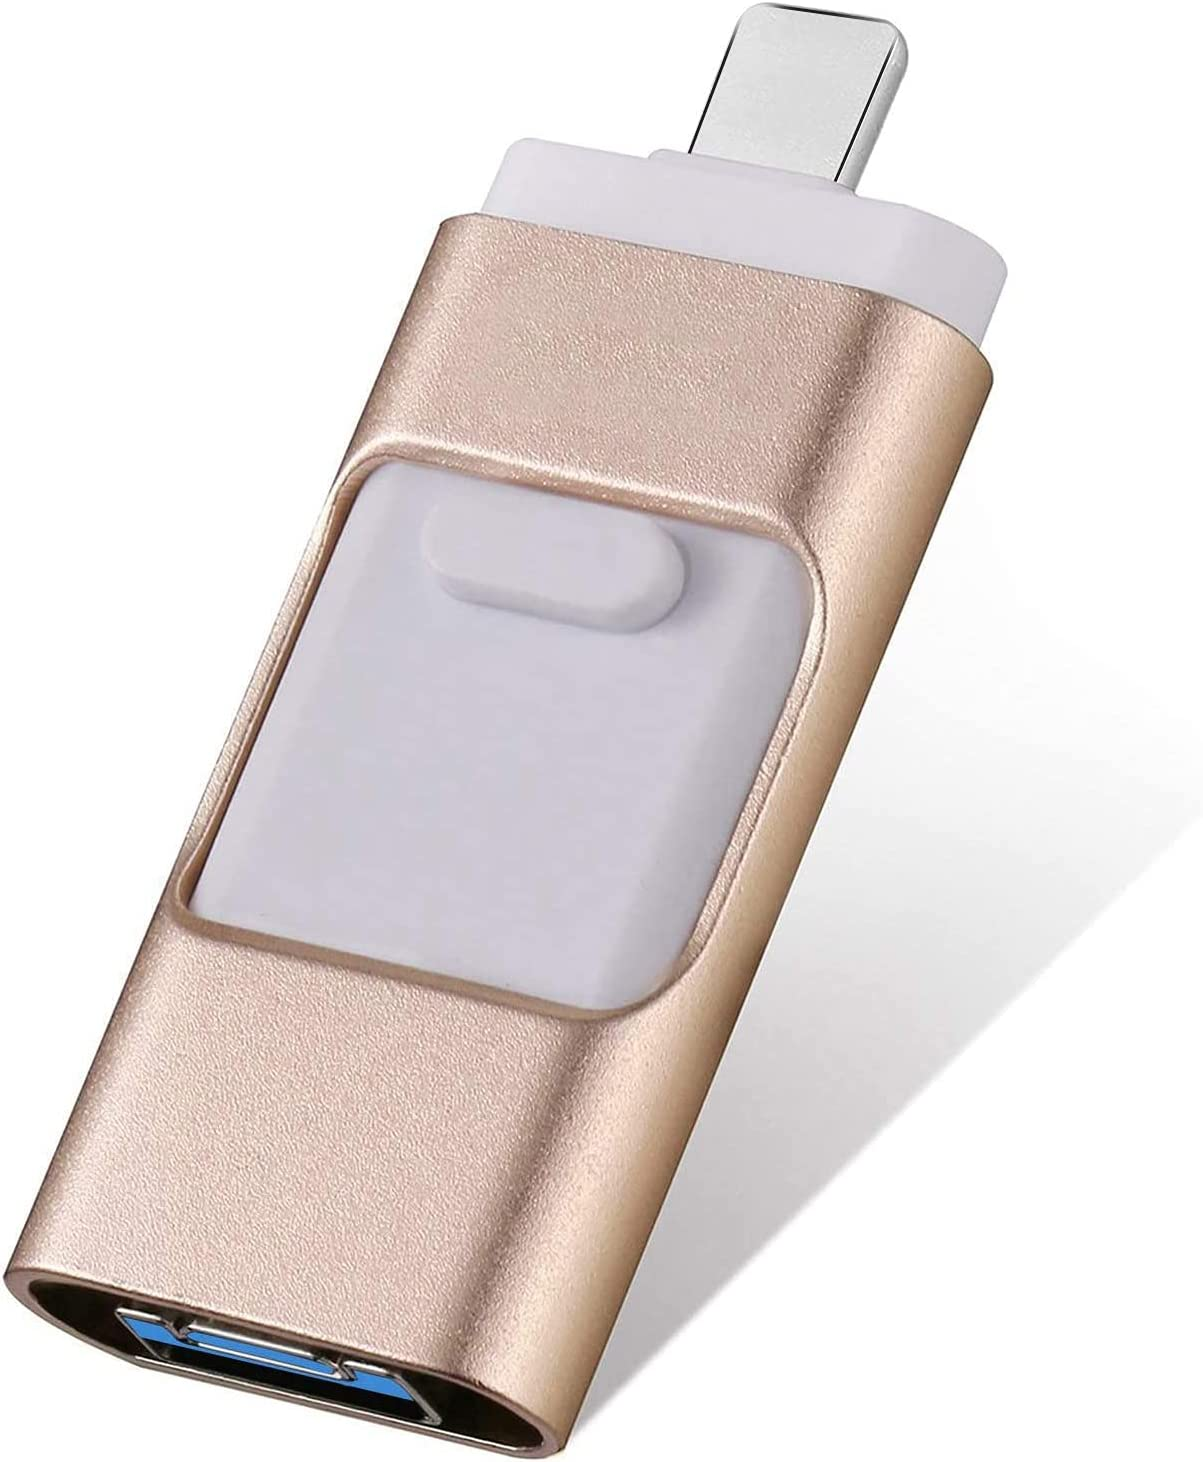 FLPLX Flash Drive 256GB, USB Memory Stick External Storage Thumb Drive Compatible with iPhone, iPad, Android, PC and More Devices (Gold)